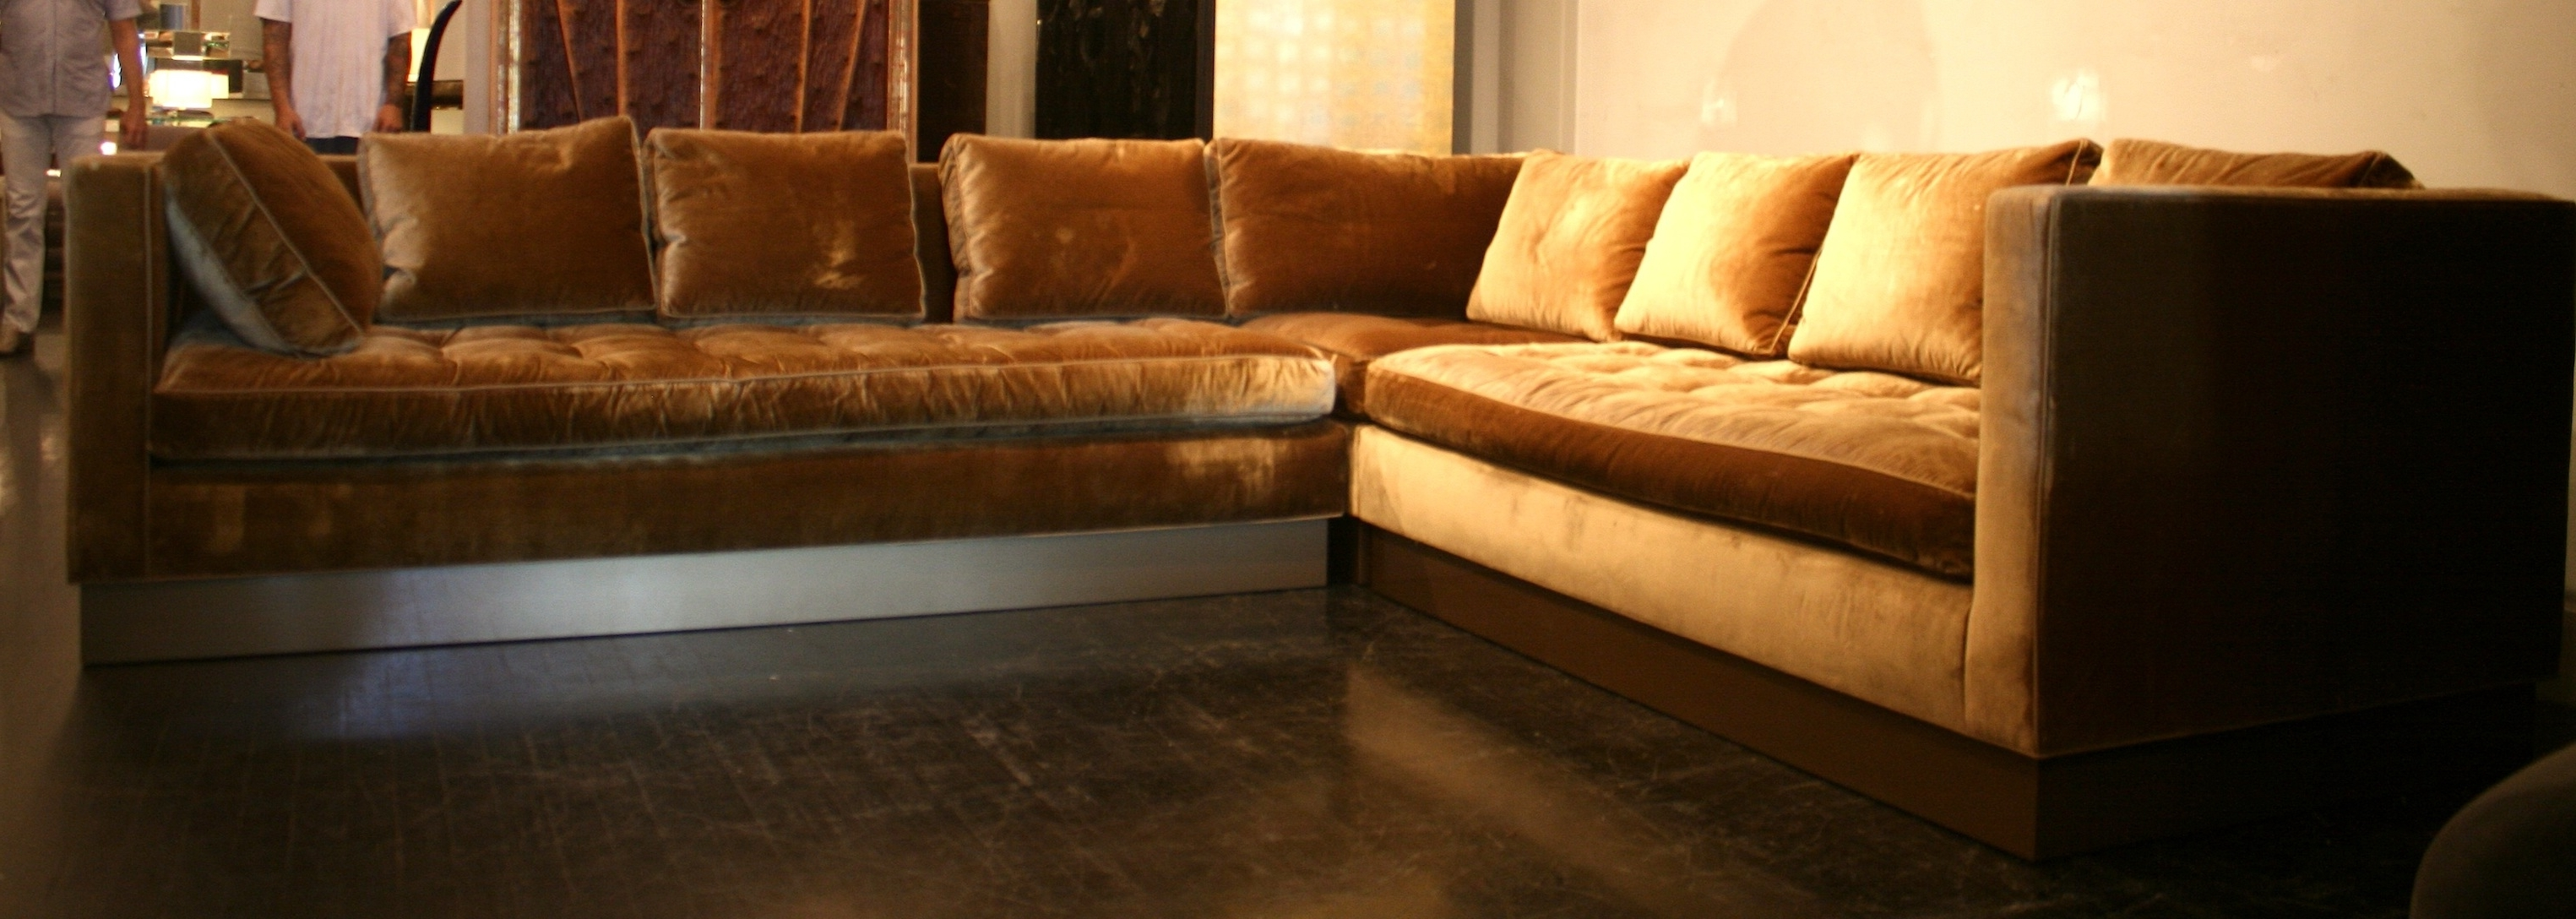 Best And Newest Gold Sectional Sofas Intended For Gold Sectional Sofa (View 7 of 20)